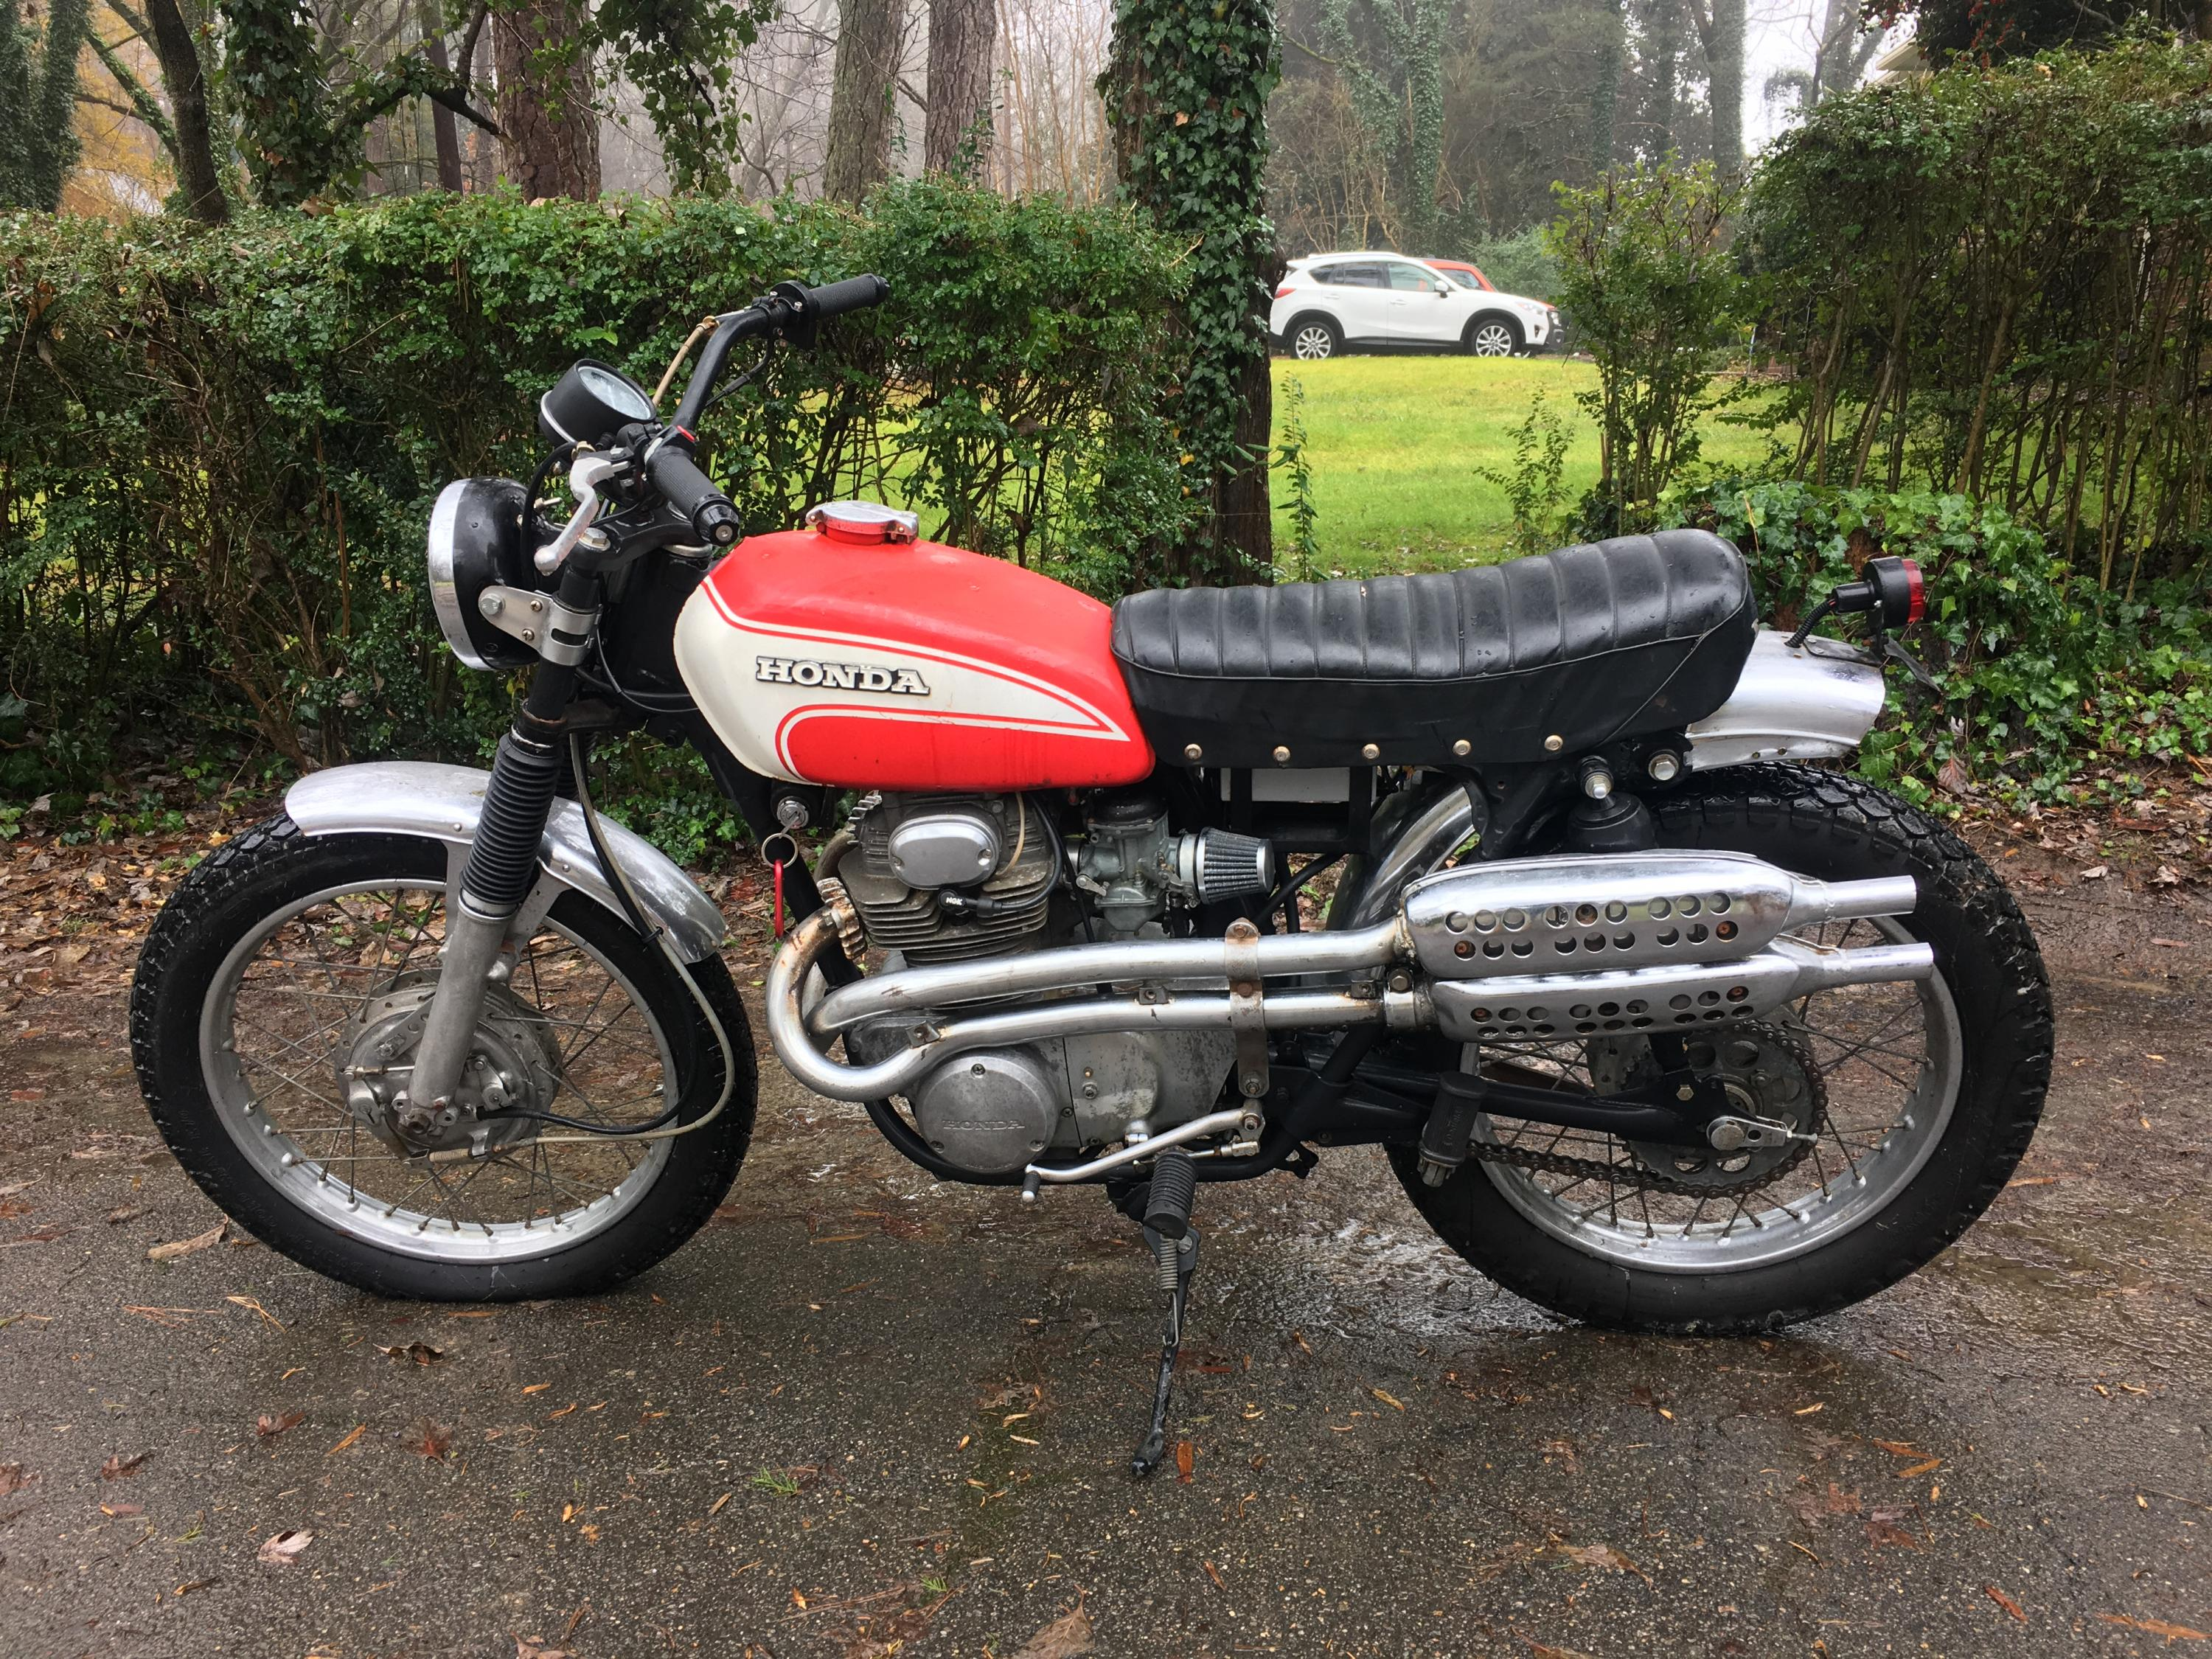 '71 CL350 lost power and died after 15 min of riding.-img_8319.jpg